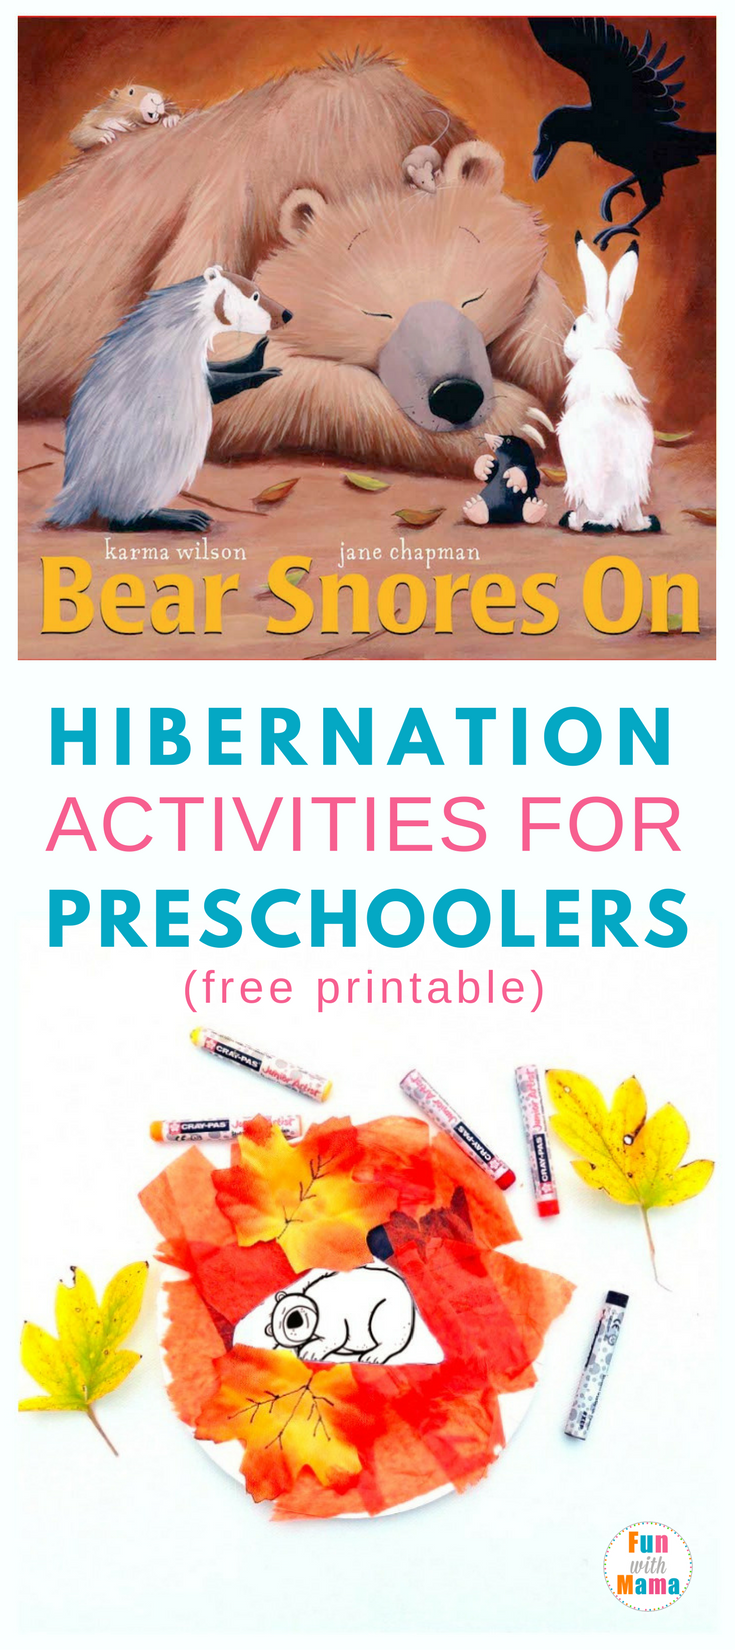 Bear snores On| Ideas| Fun| Preschool| Free printables| Craft